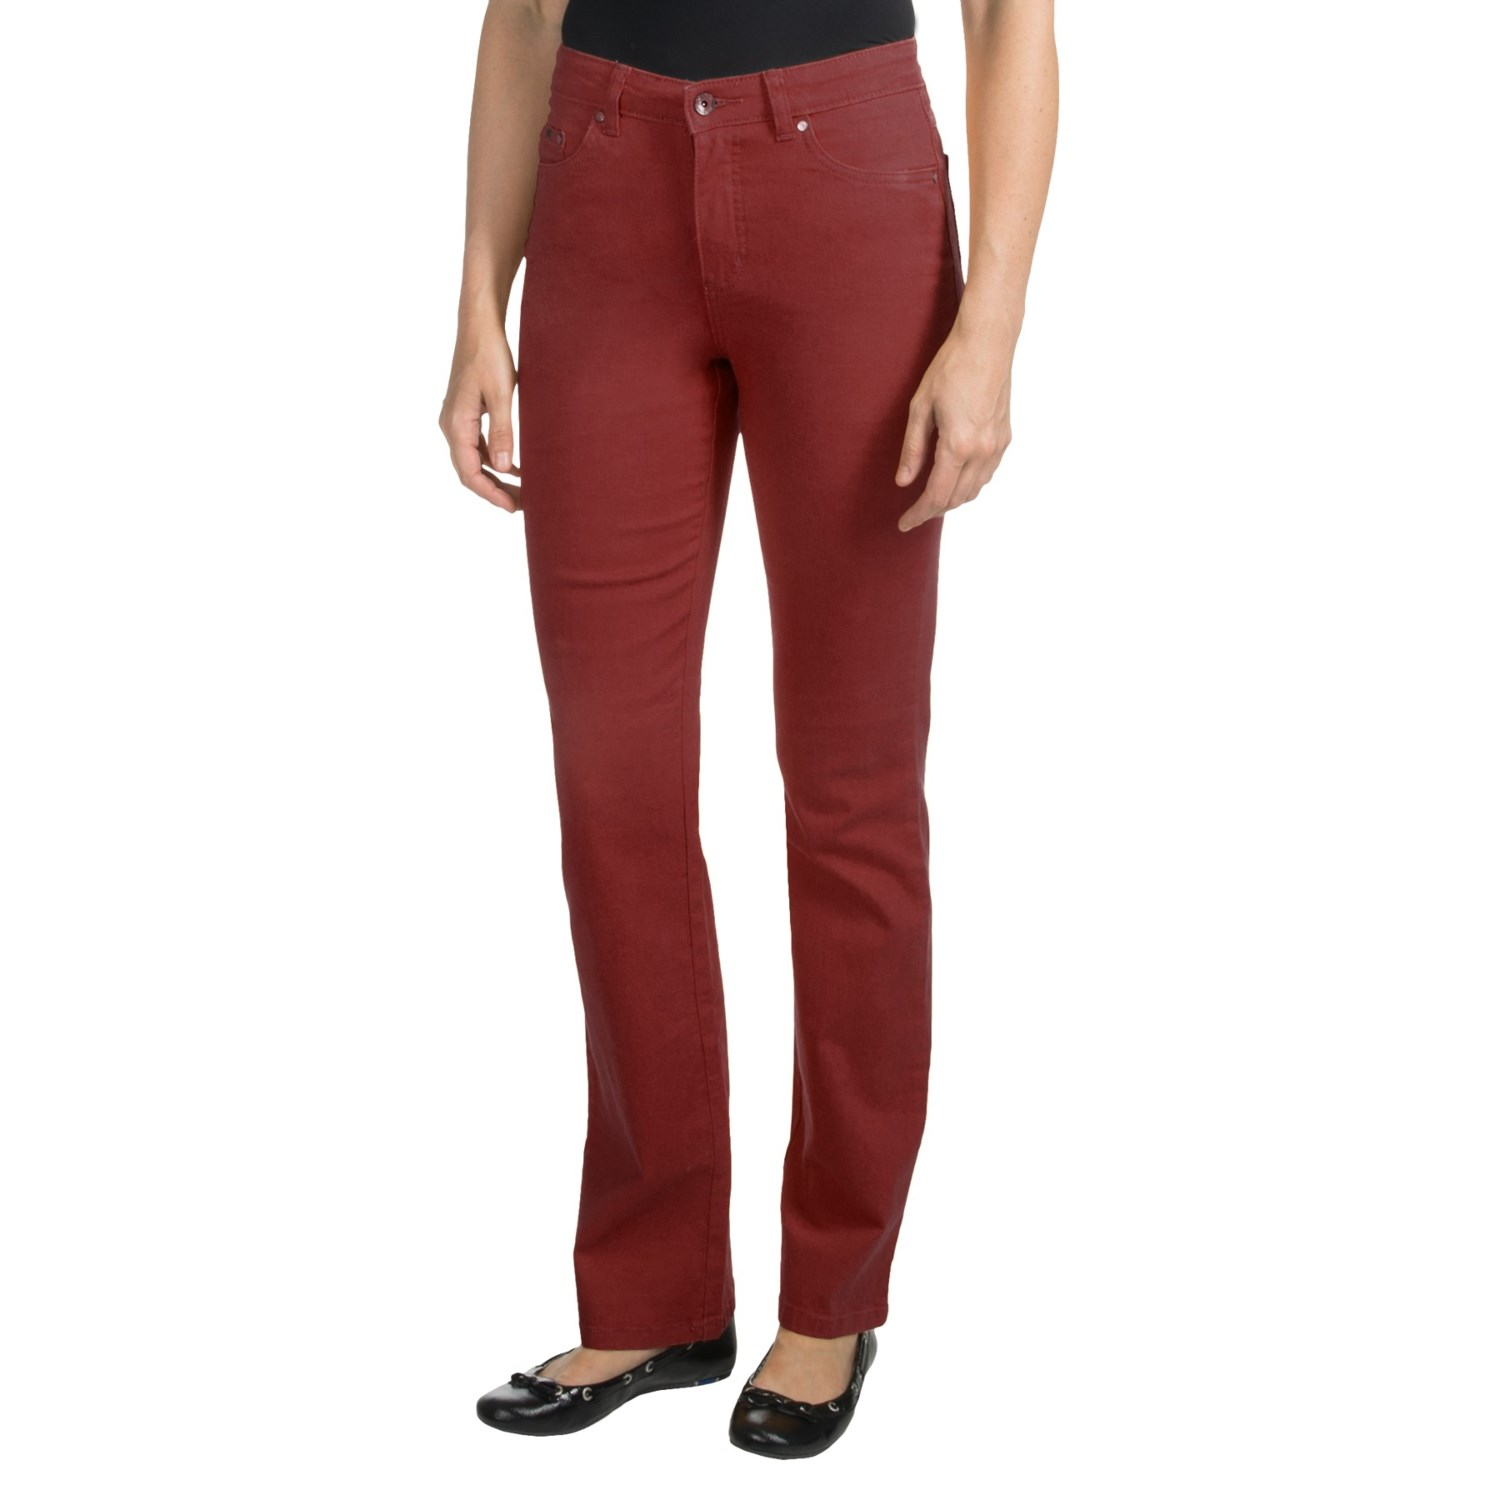 Gap offers a chic variety of colored jeans for women. A trending, popular style, women's colored jeans are the favorites of women who know fashion. Enjoy designer color jeans for women for an effortlessly chic look. Step out in style and fun in ultra-flattering colored jeans for women from Gap.